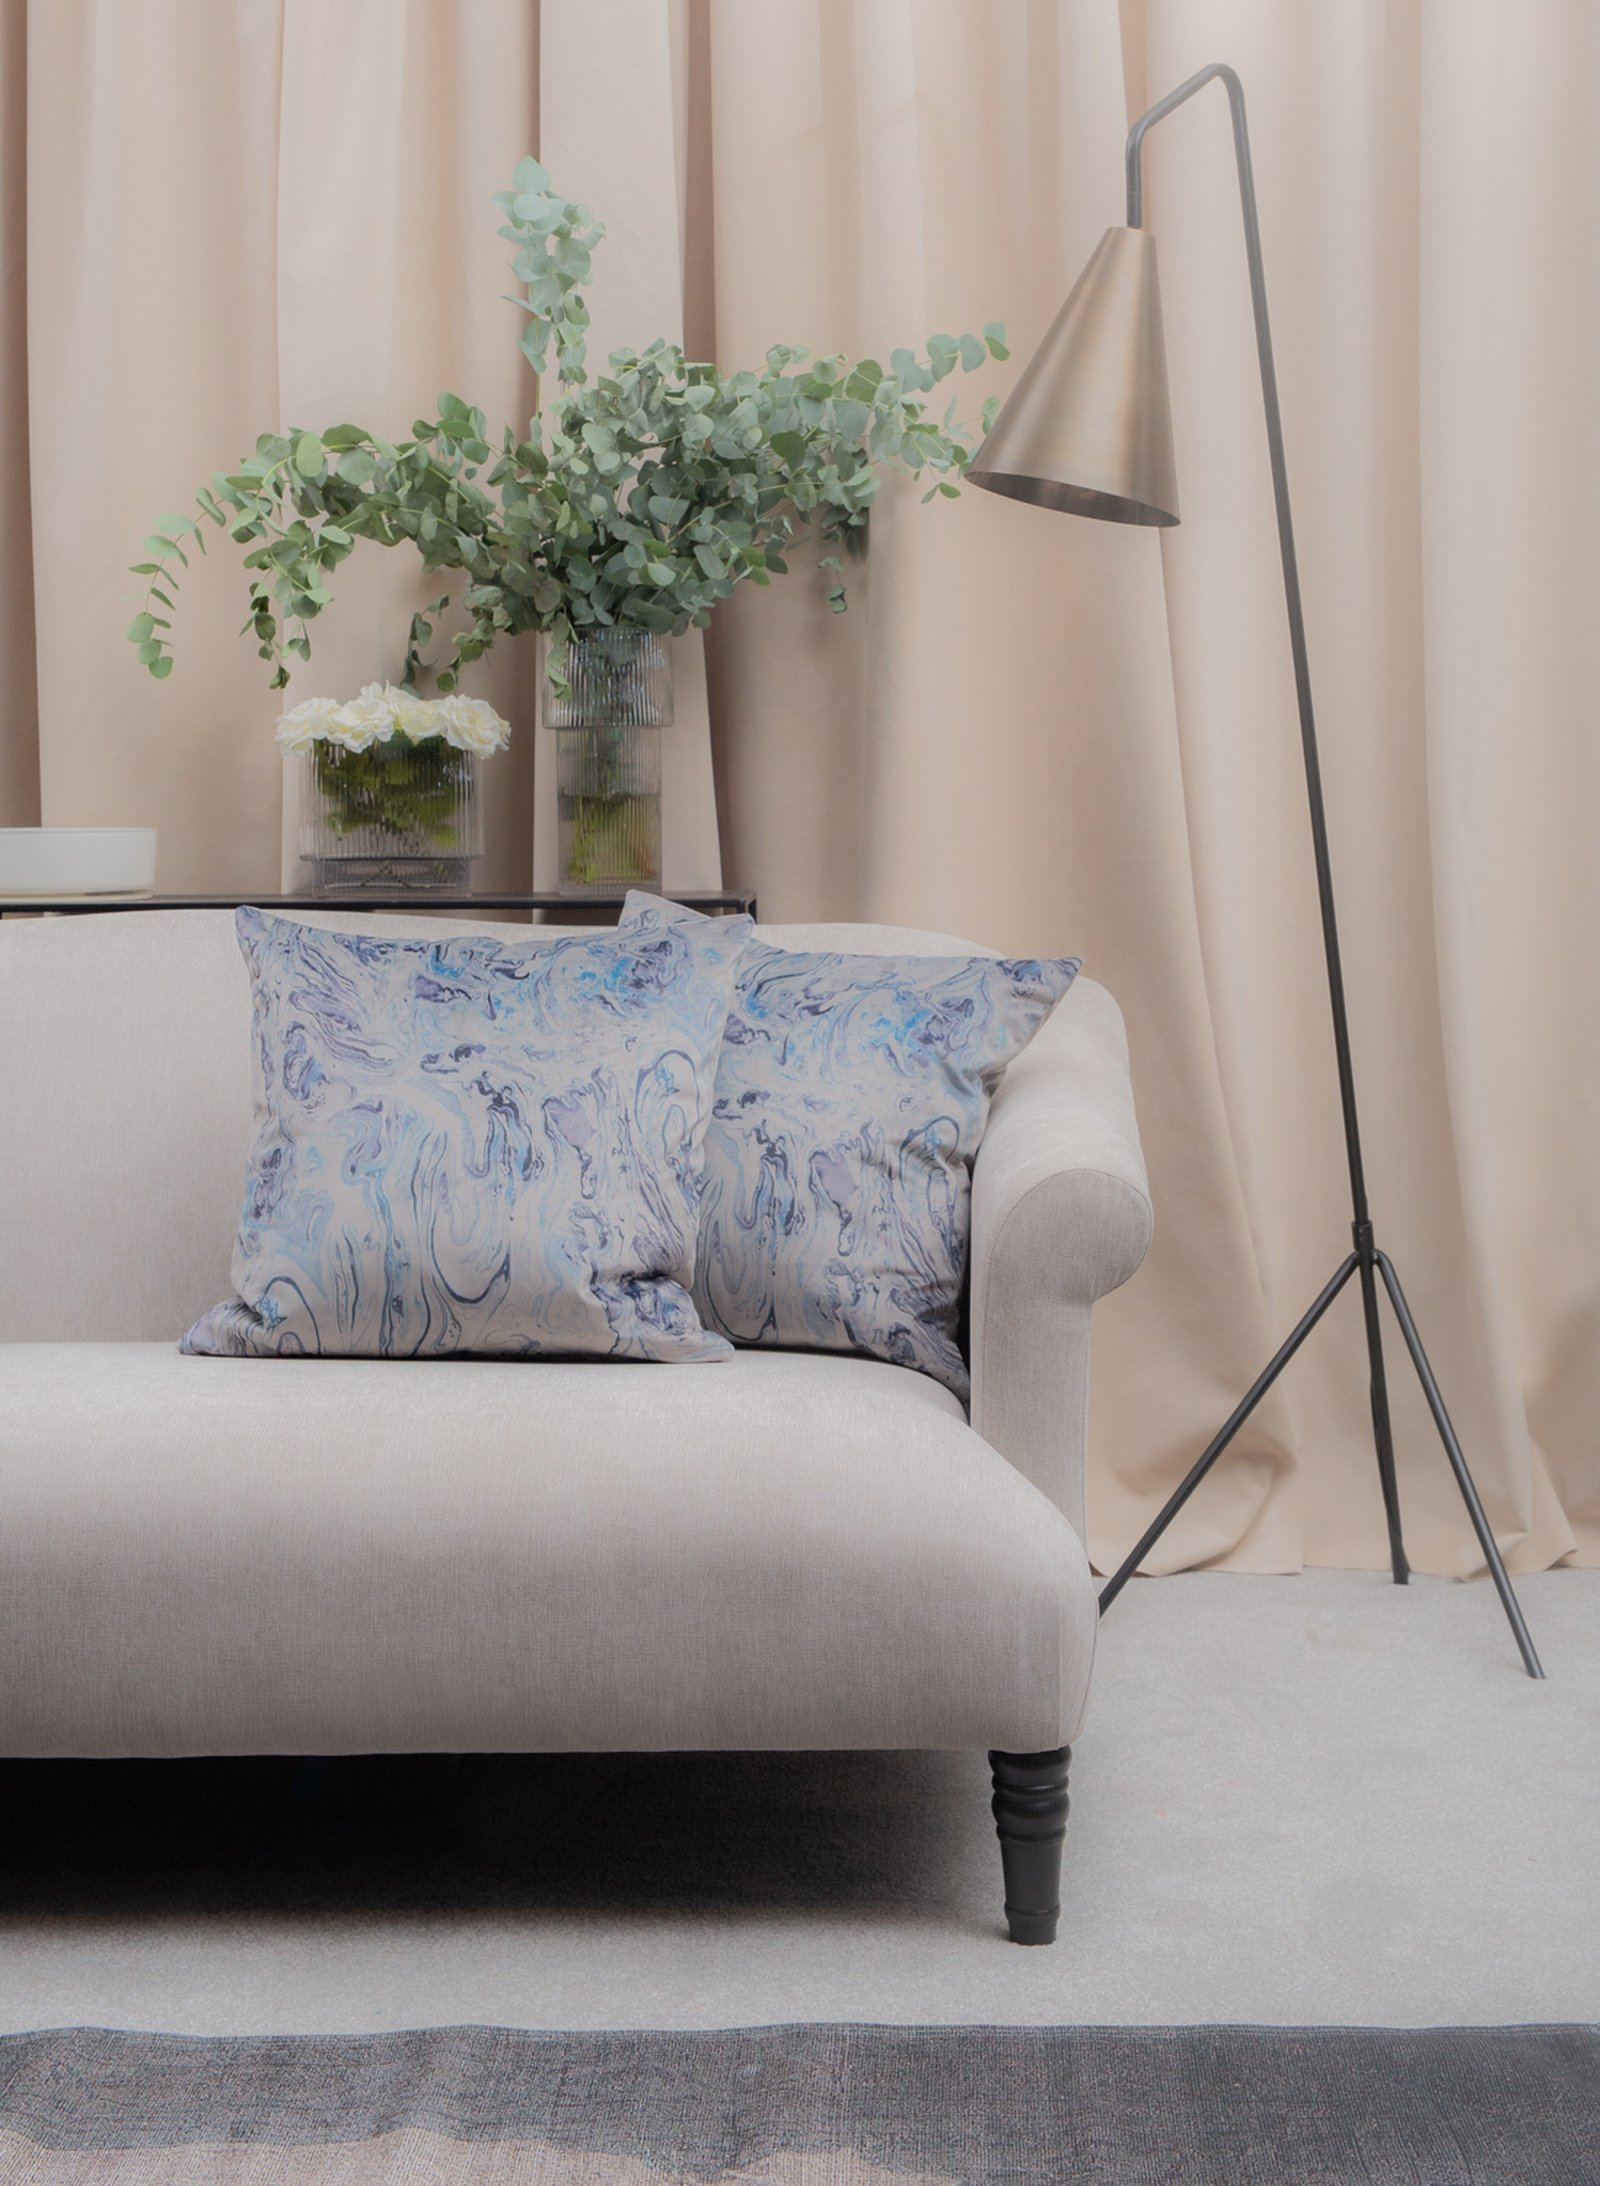 Image - Elegant Scandi highlighted the power of muted tones contrasted with glamorous accents